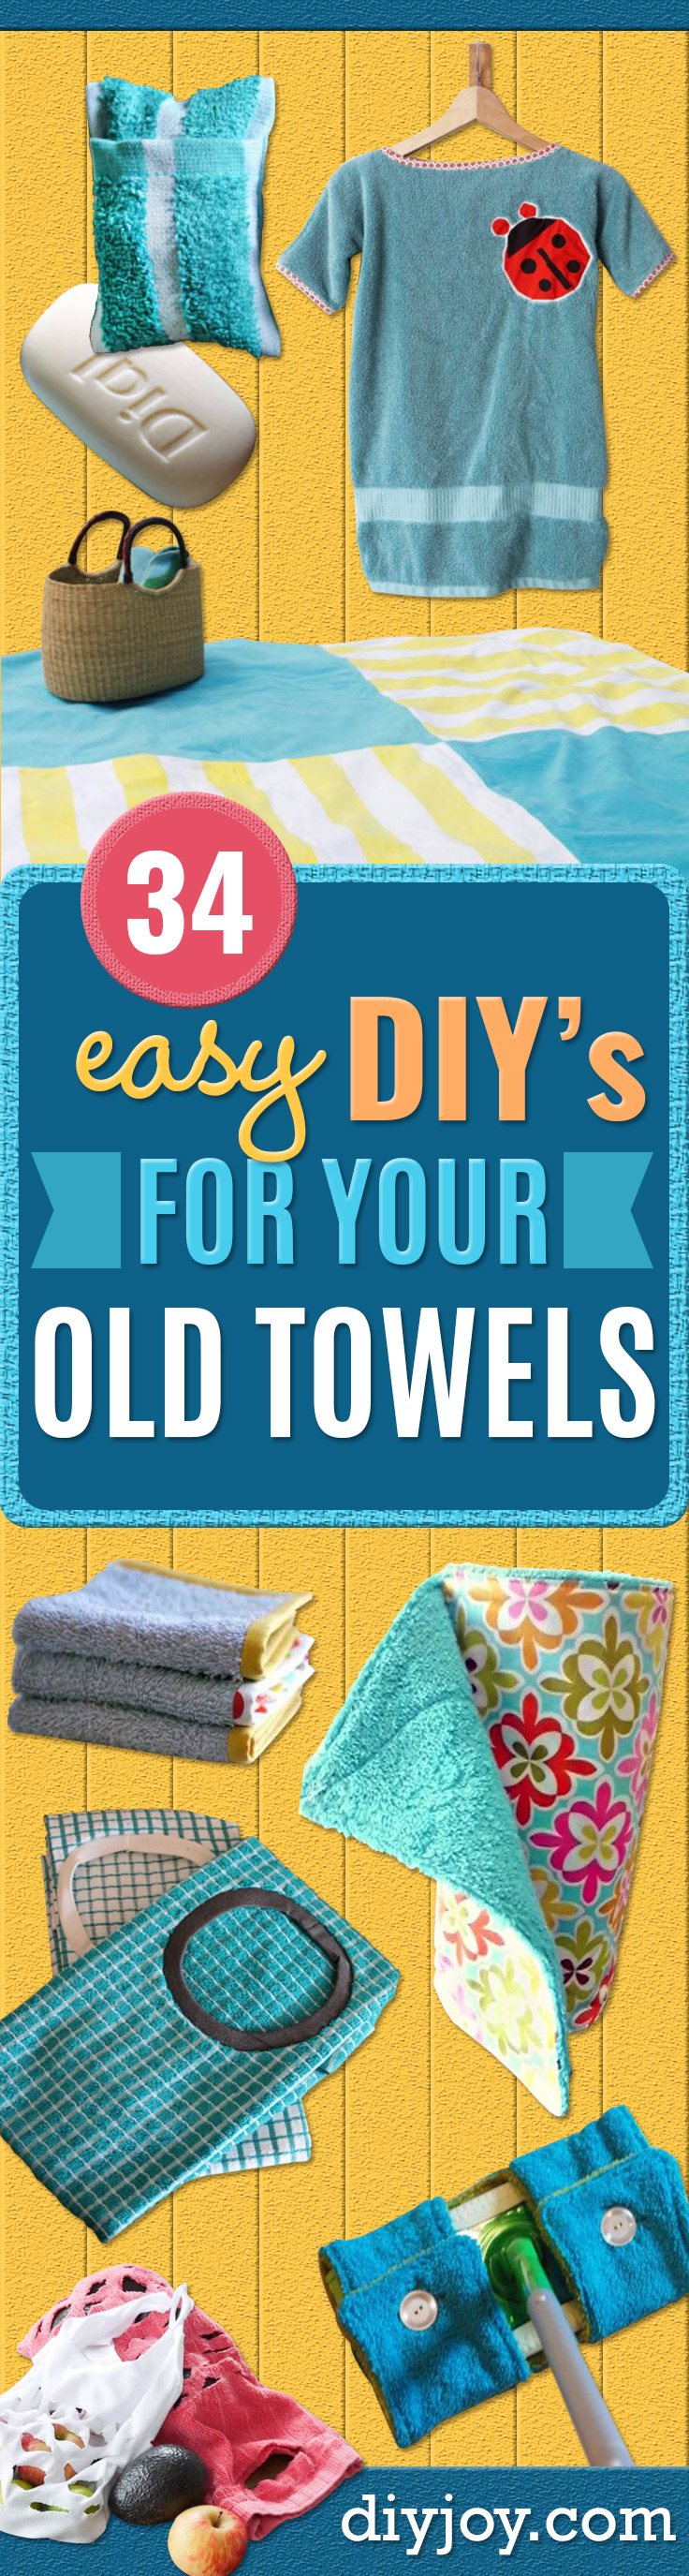 DIY Ideas With Old Towels - Cool Crafts To Make With An Old Towel - Cheap Do It Yourself Gifts and Home Decor on A Budget - Creative But Cheap Ideas for Decorating Your House and Room -